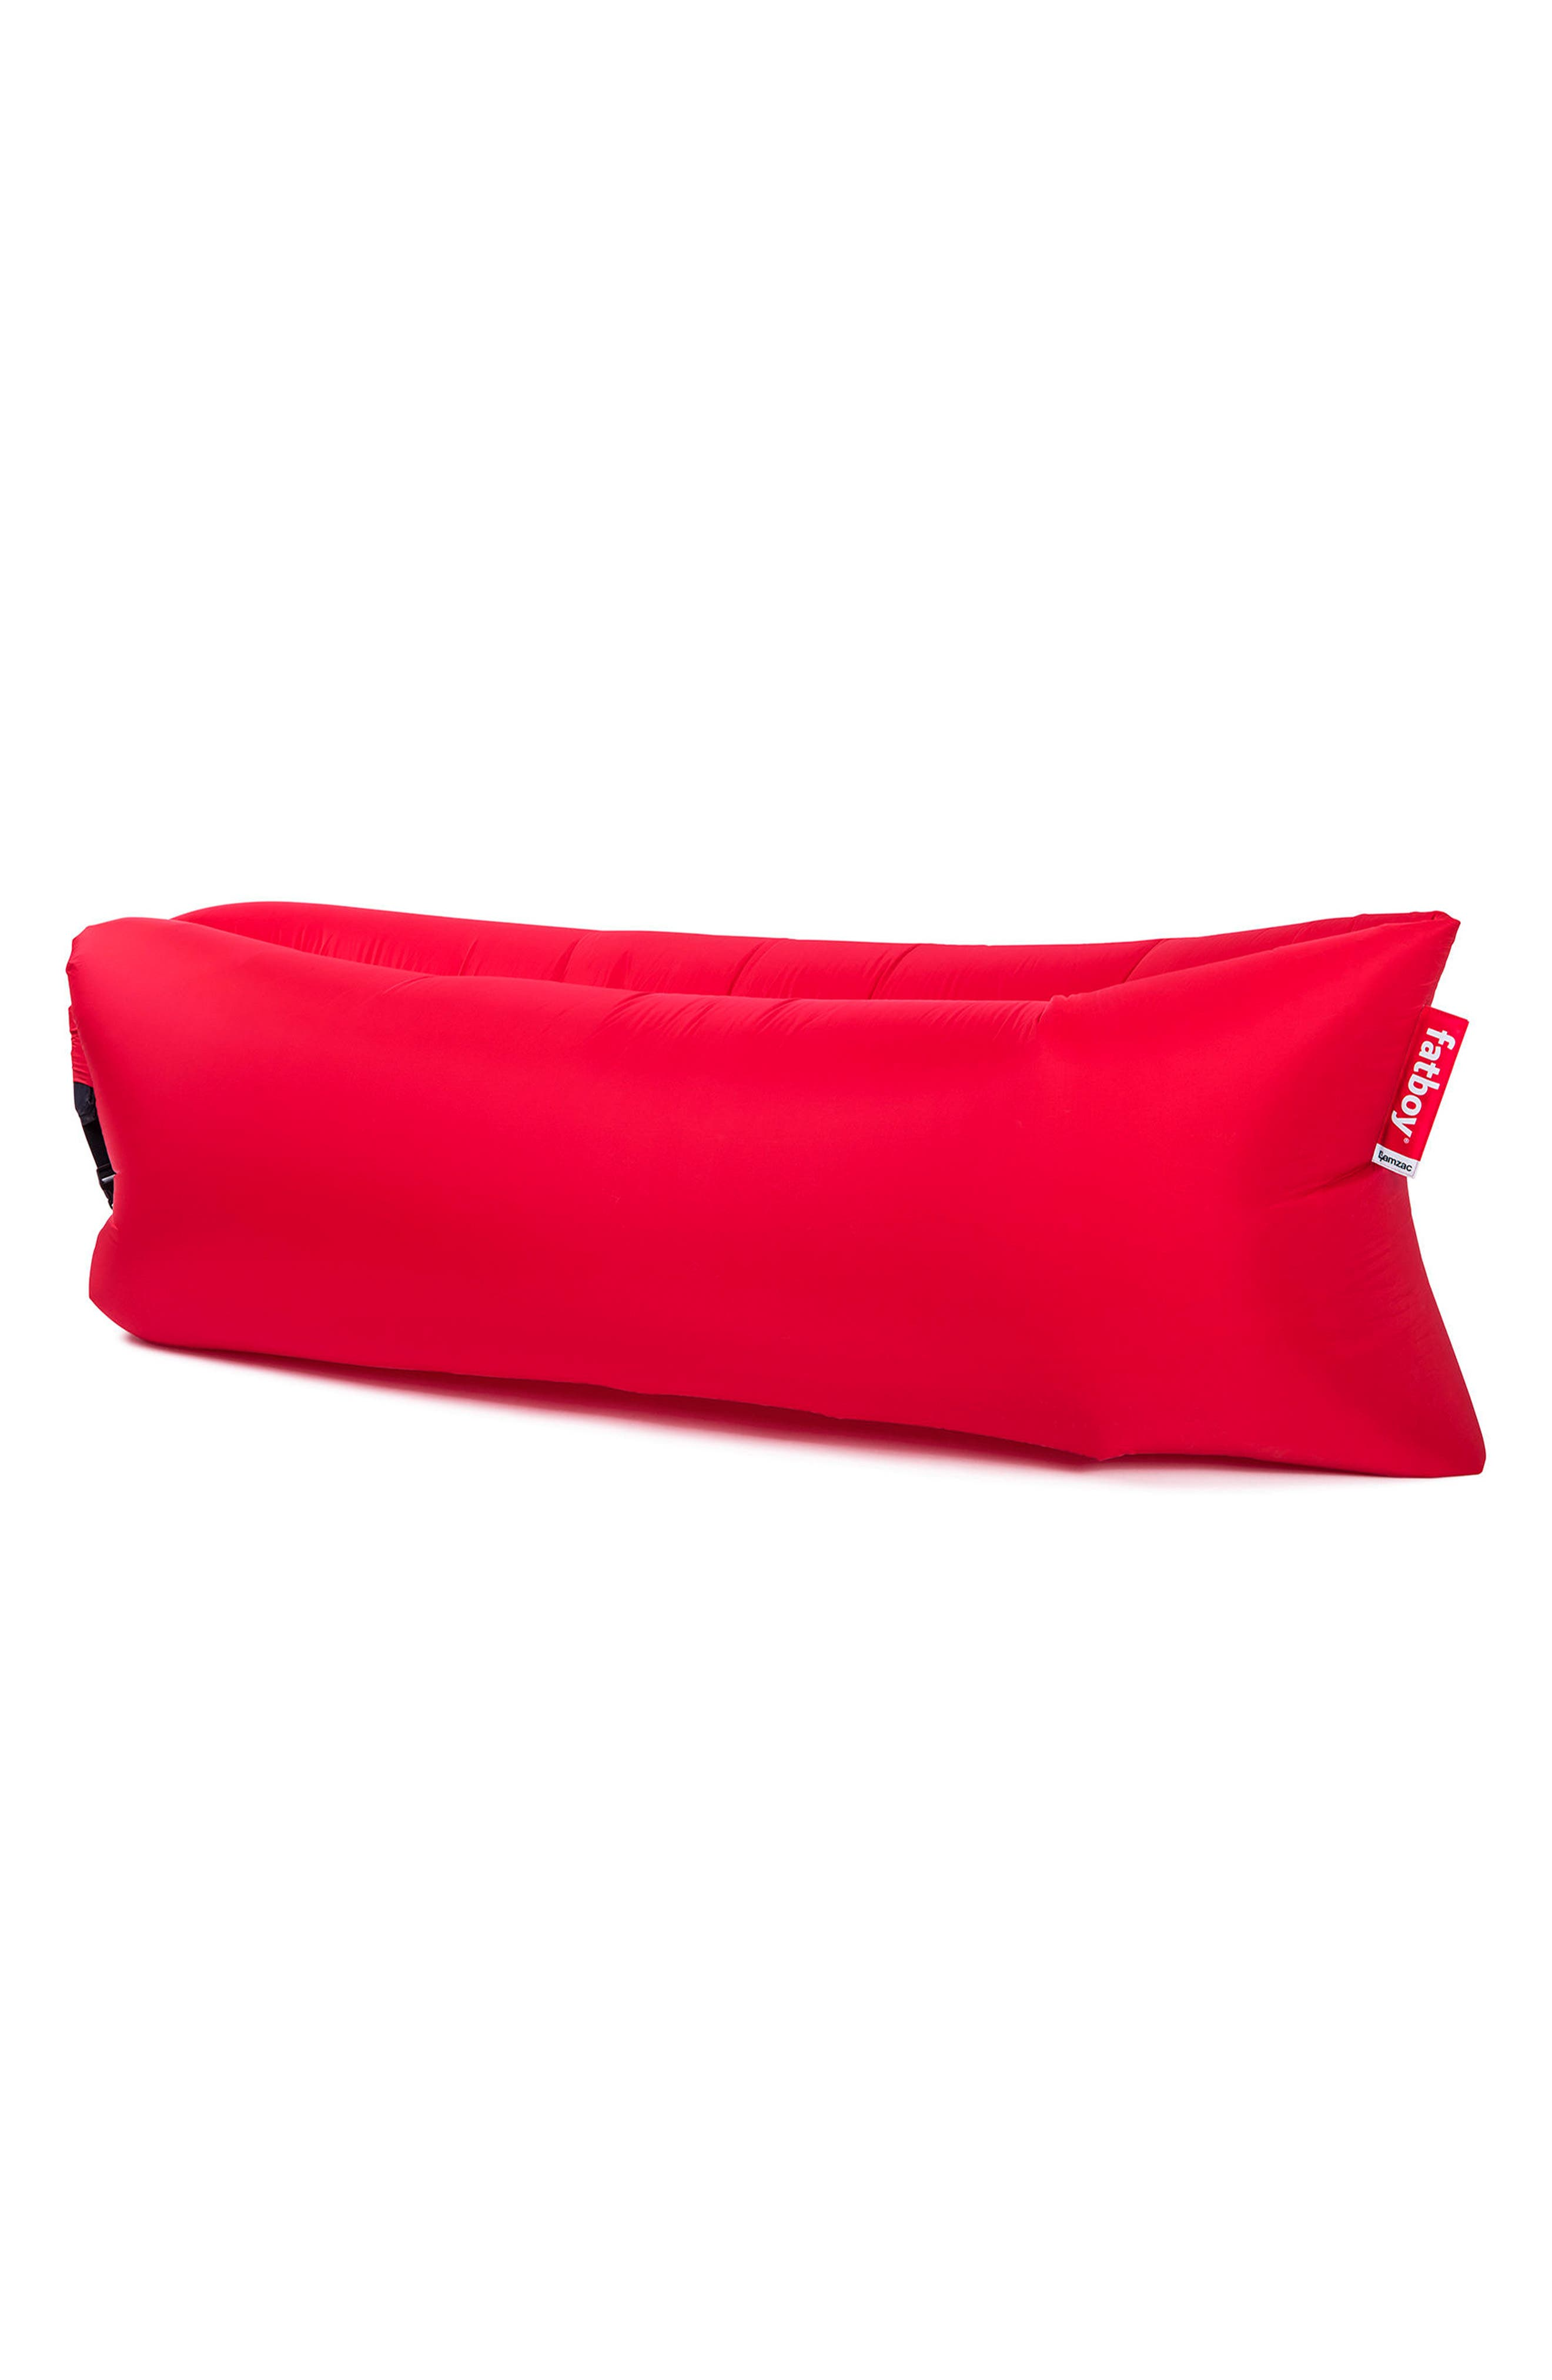 Lamzac<sup>®</sup> The Original Inflatable Lounger,                         Main,                         color, Red 2